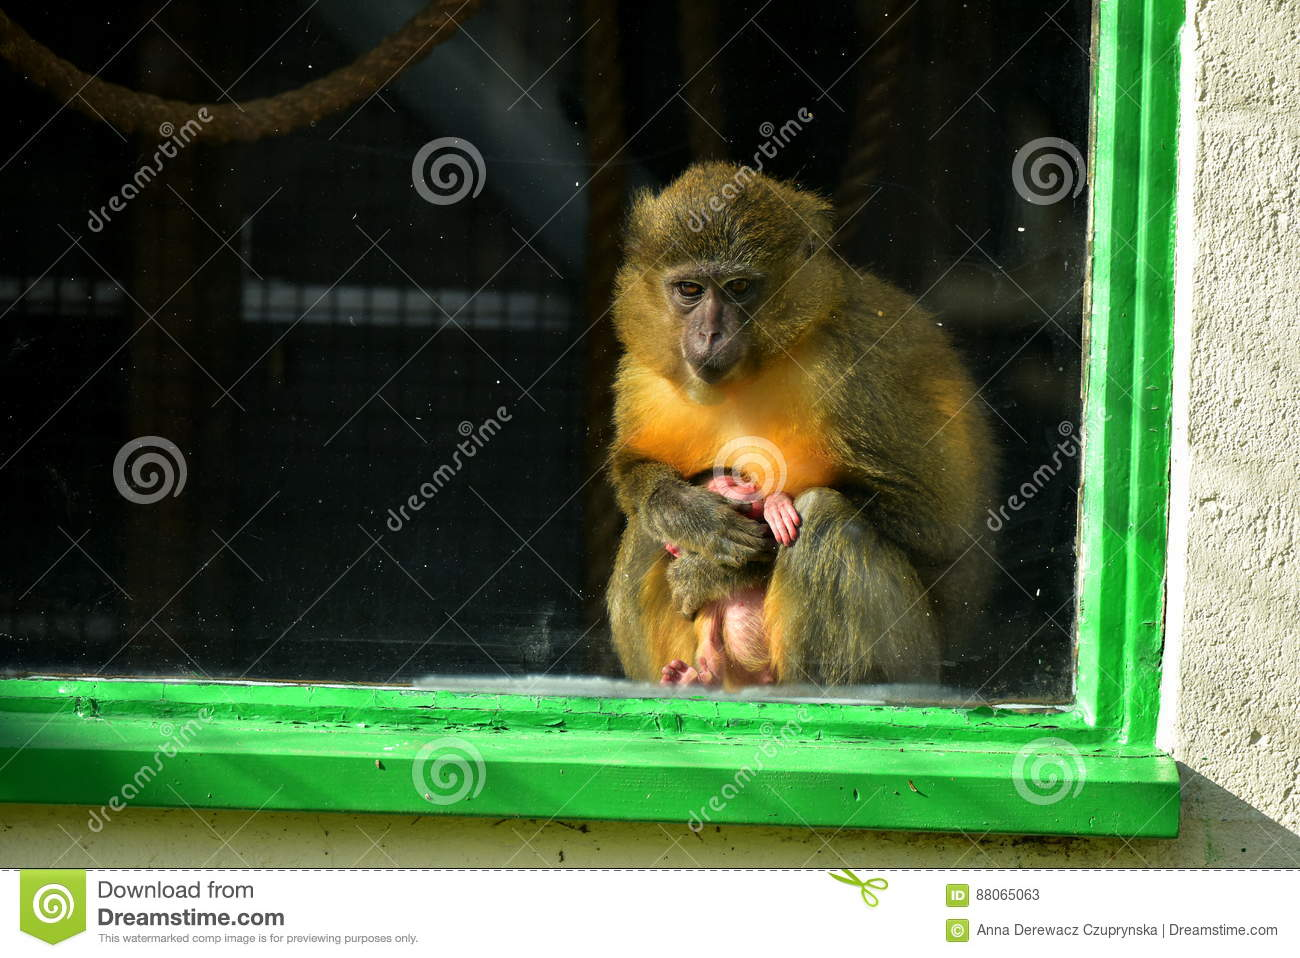 Monkey Cum Porn - Free Studentin Stockings Tube selects HD Porn Movies so carefully, usually  ready cum long before go halfway through dirty video capuchin everyone.